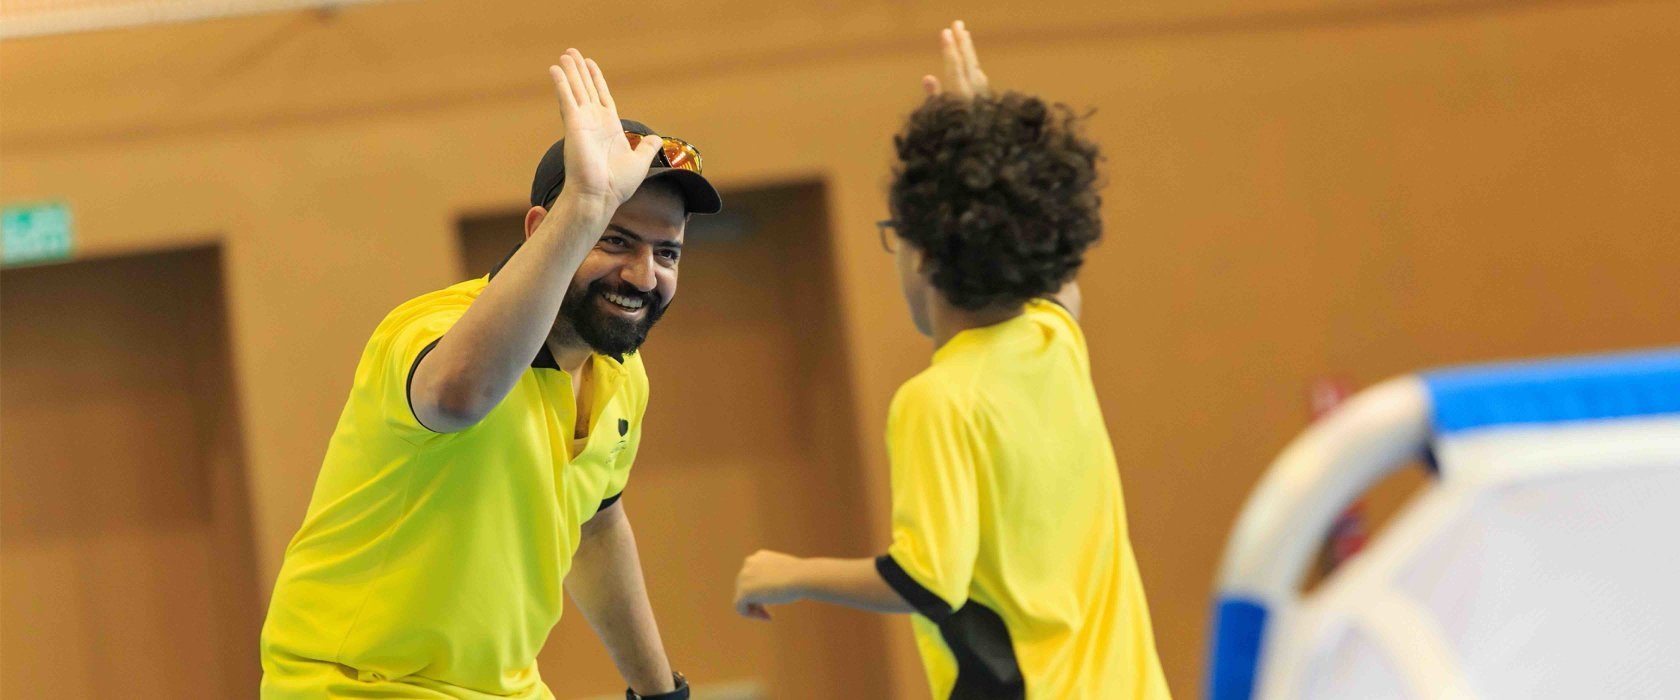 Qatar Foundation: helping children with specific needs thrive